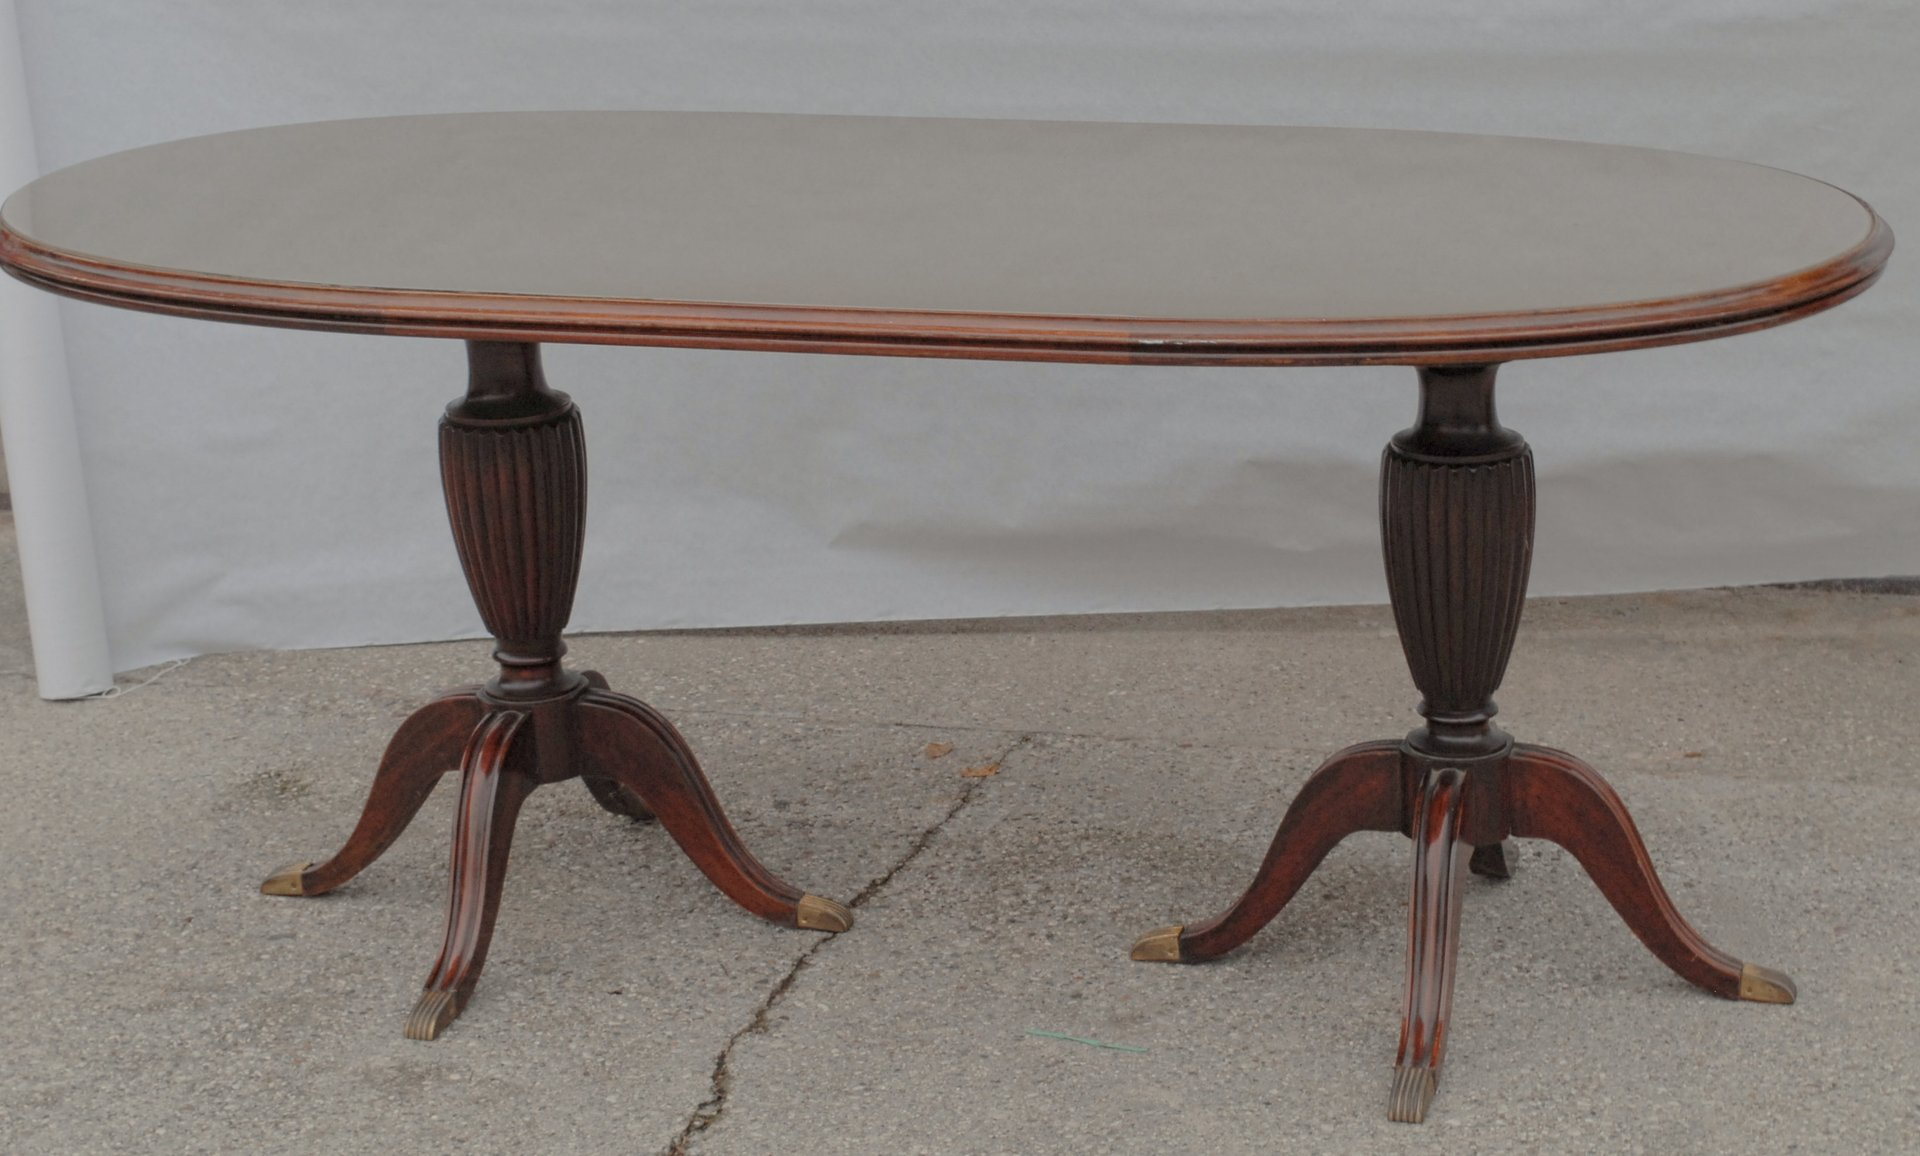 Vintage Oval Mahogany Dining Table 9. $3,612.00. Price Per Piece